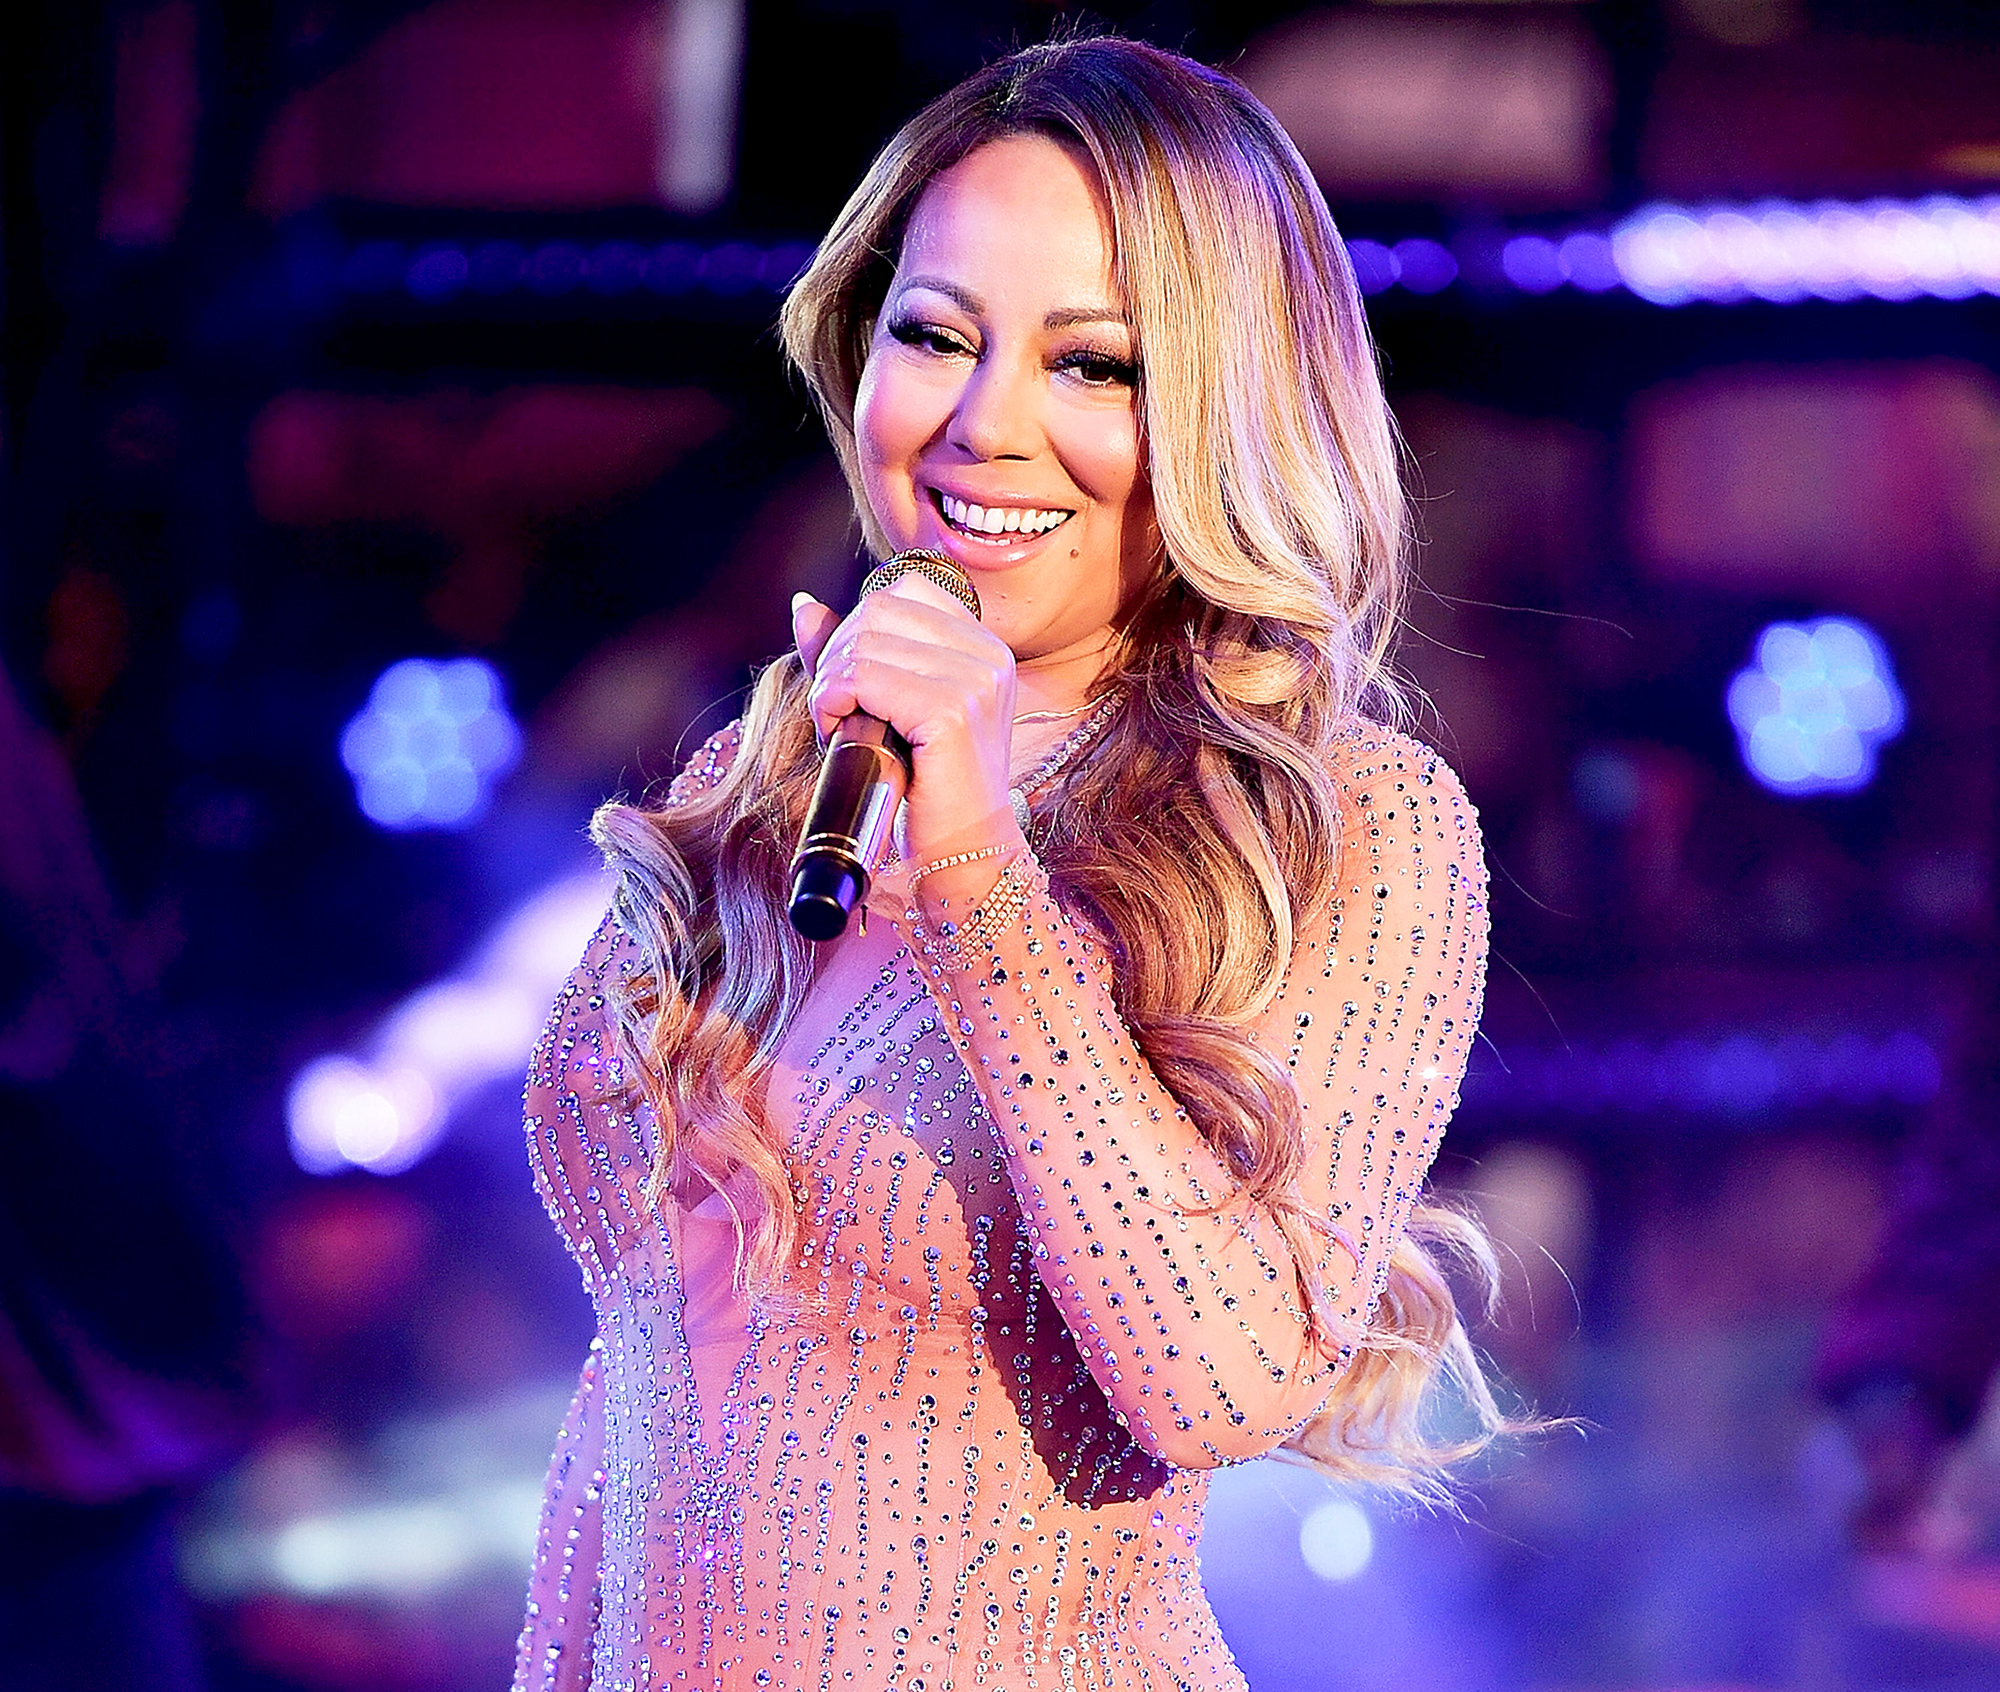 Mariah Carey returning to 'New Year's Rockin' Eve' for redemption